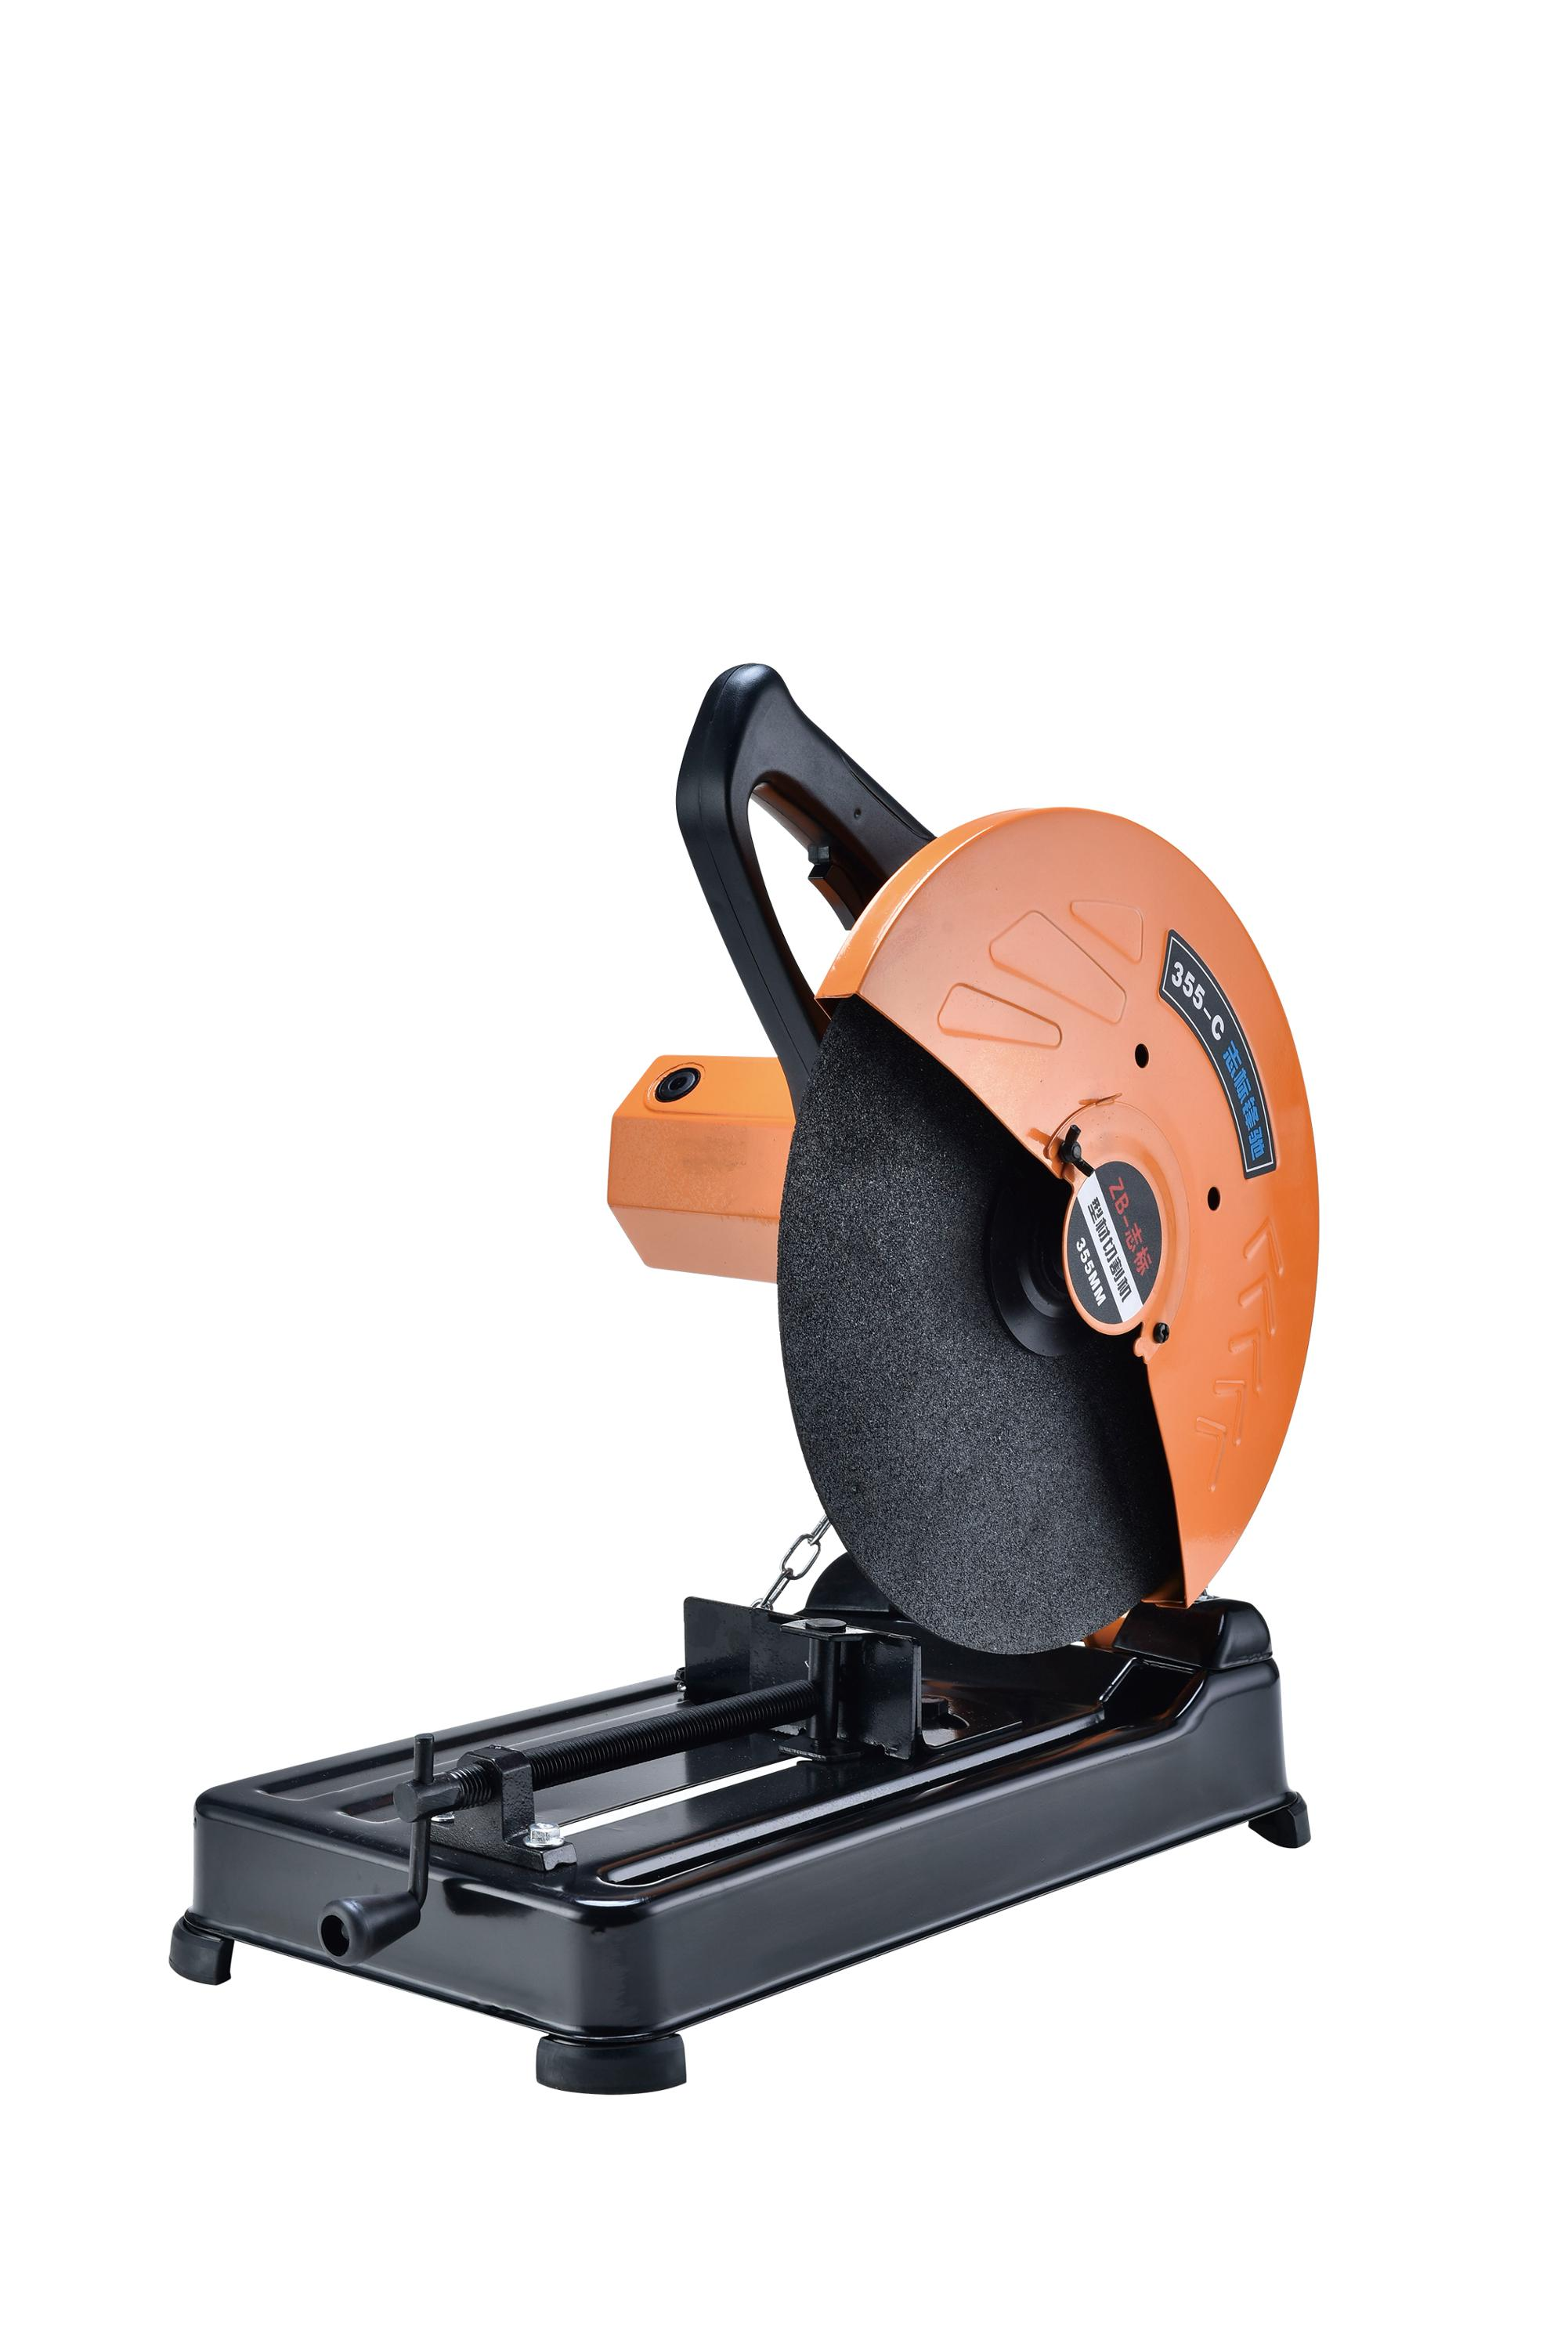 portable cut-off machine chop saw for sale